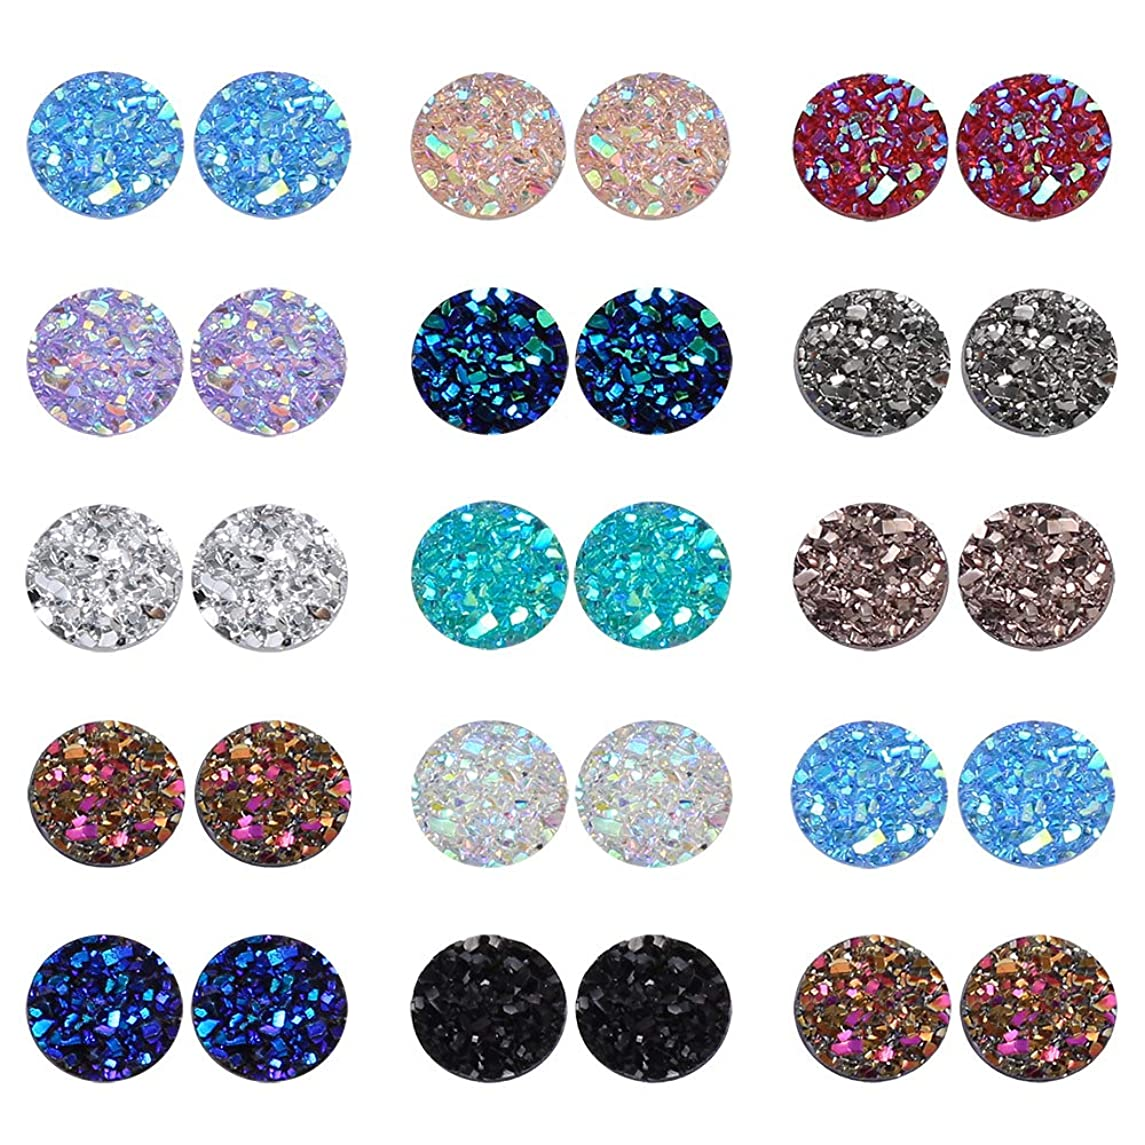 PP OPOUNT 260 Pieces Mixed Shinny Colors Faux Druzy Cabochons Round Flat Back Dome Cabochons for Jewelry Making, DIY Craft (8mm in Diameter)